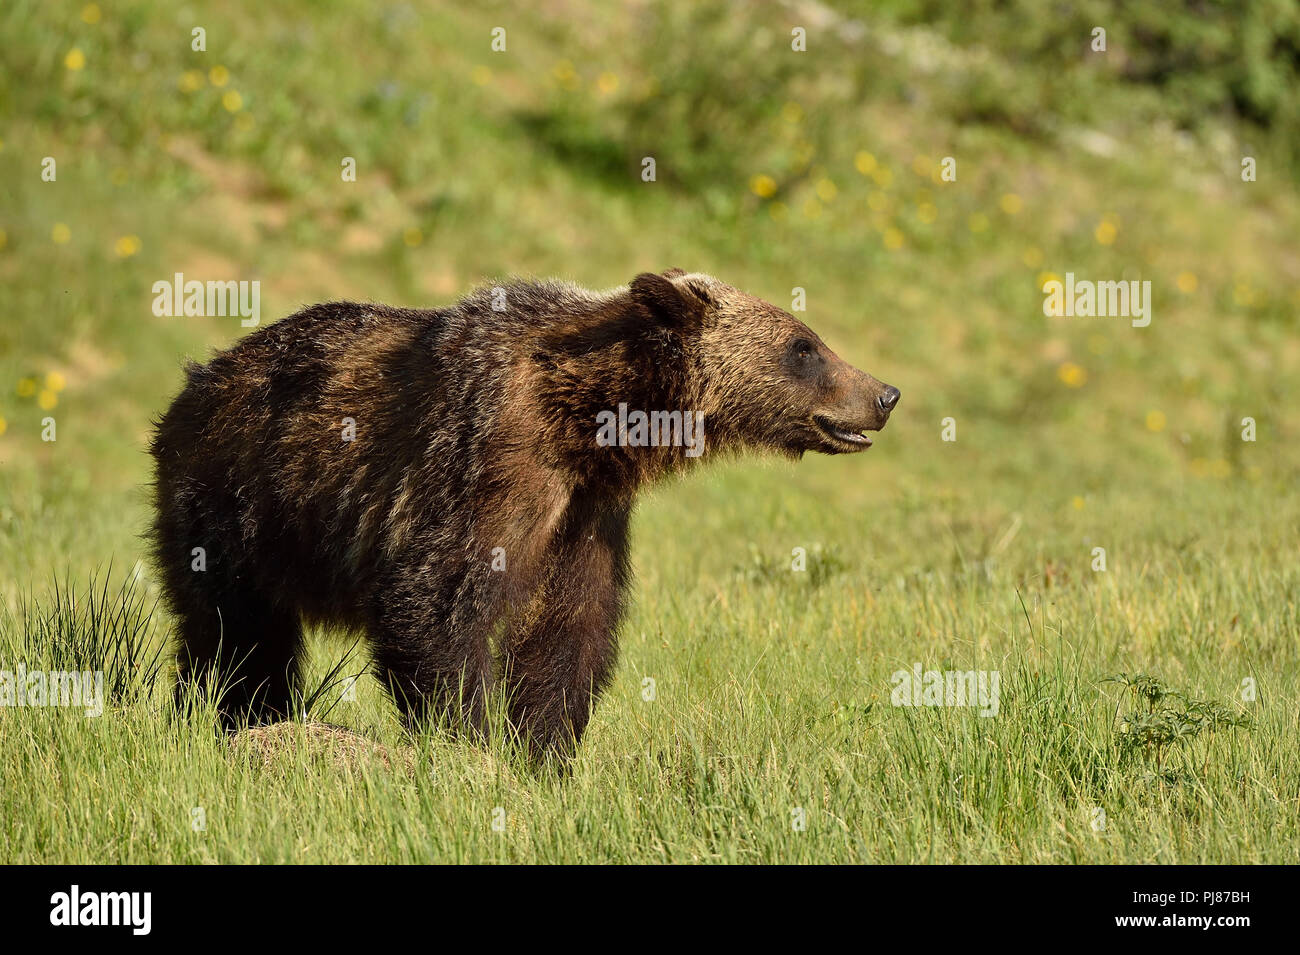 A juvenile Grizzly Bear Ursus arctos; standing in  an open meadow in rural Alberta Canada looking away. - Stock Image